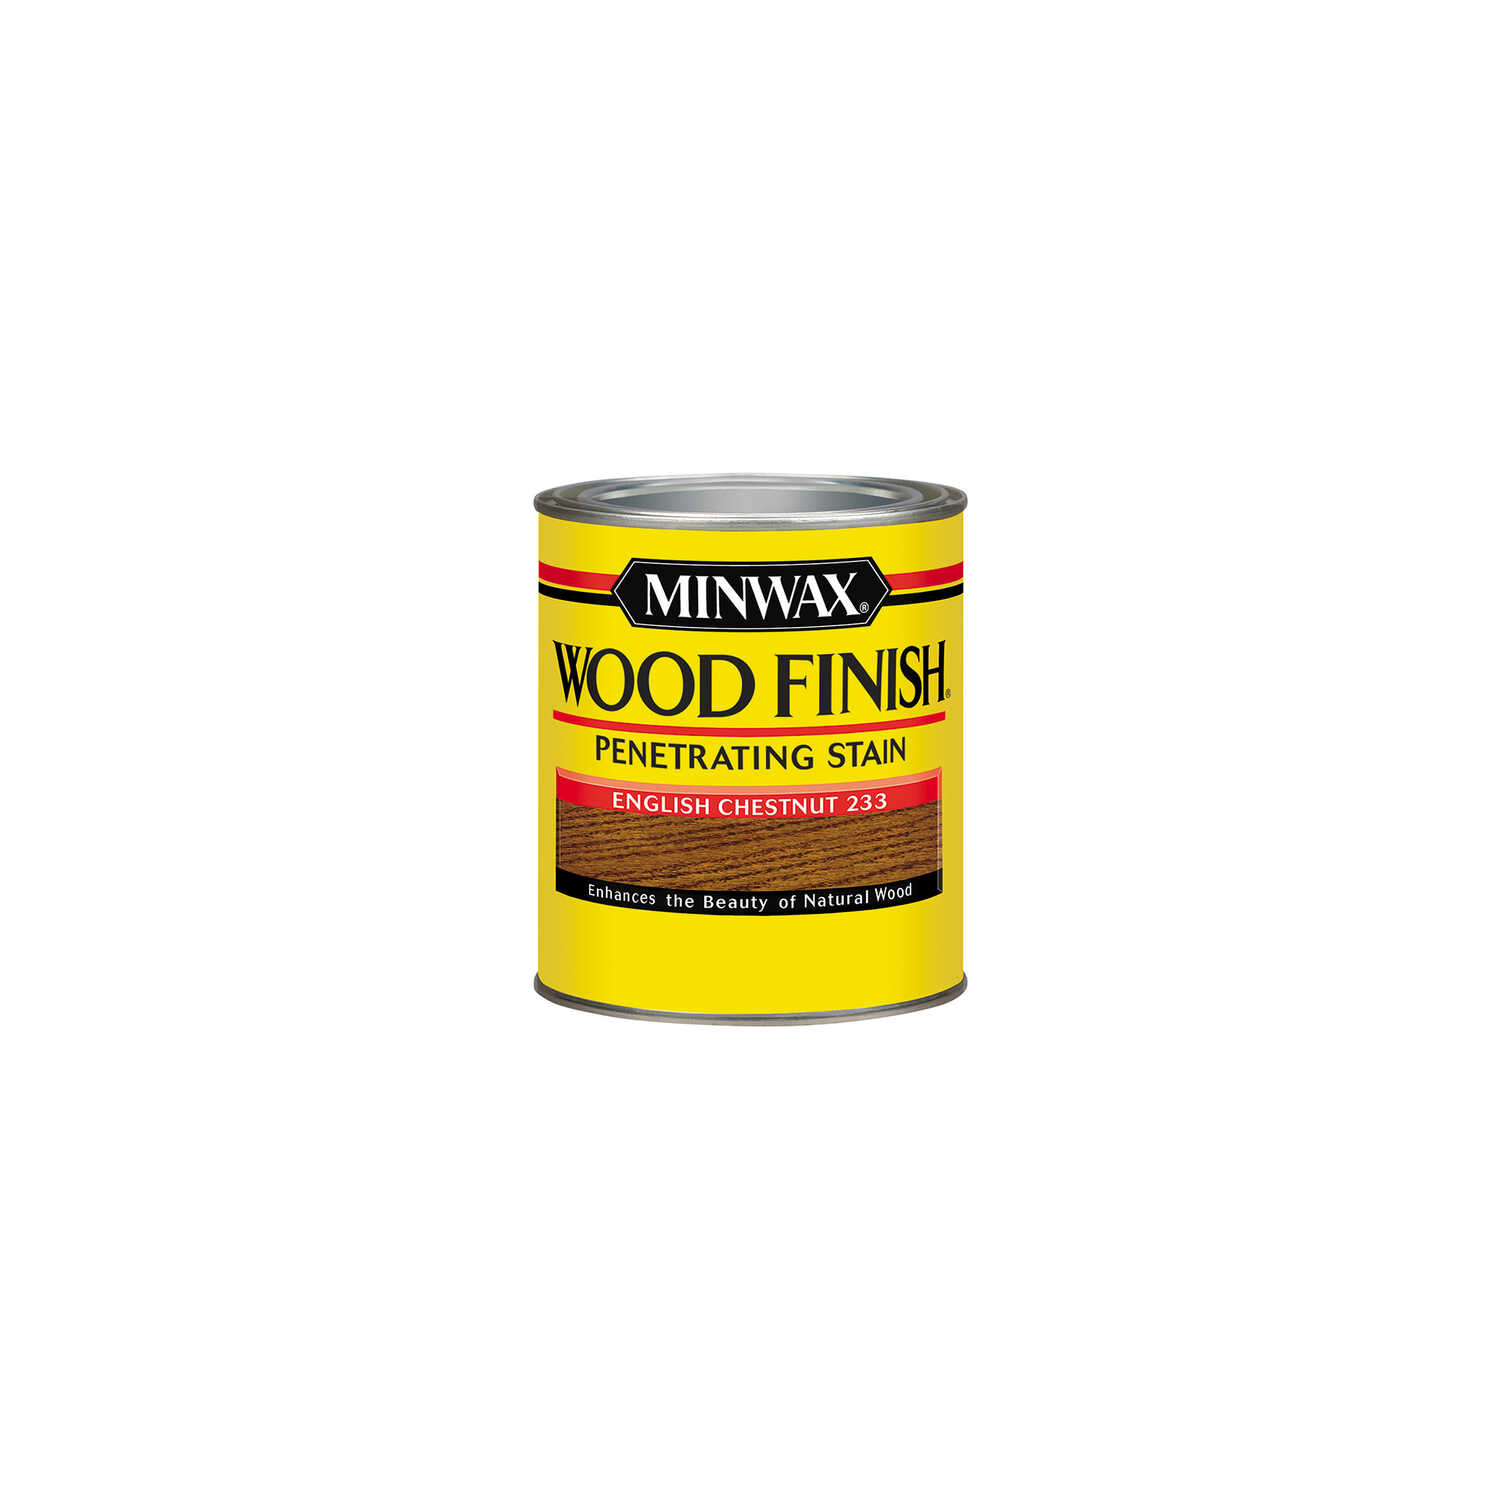 Minwax  Wood Finish  Semi-Transparent  English Chestnut  Oil-Based  Oil  Wood Stain  0.5 pt.